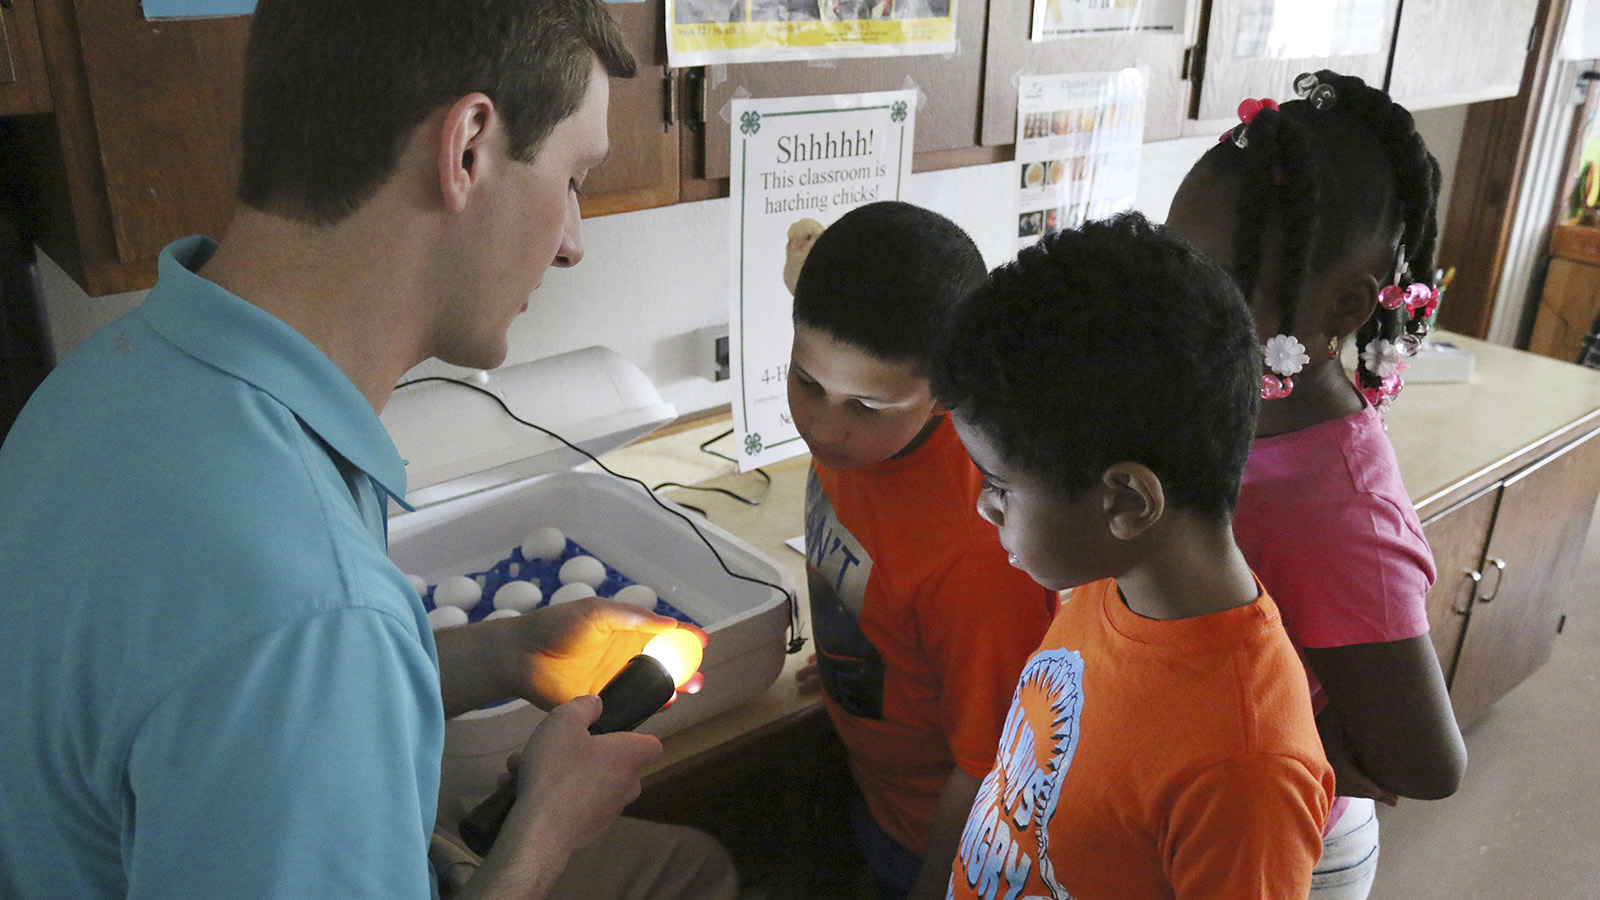 3 youth looking at adult who is holding a light up to a chicken egg